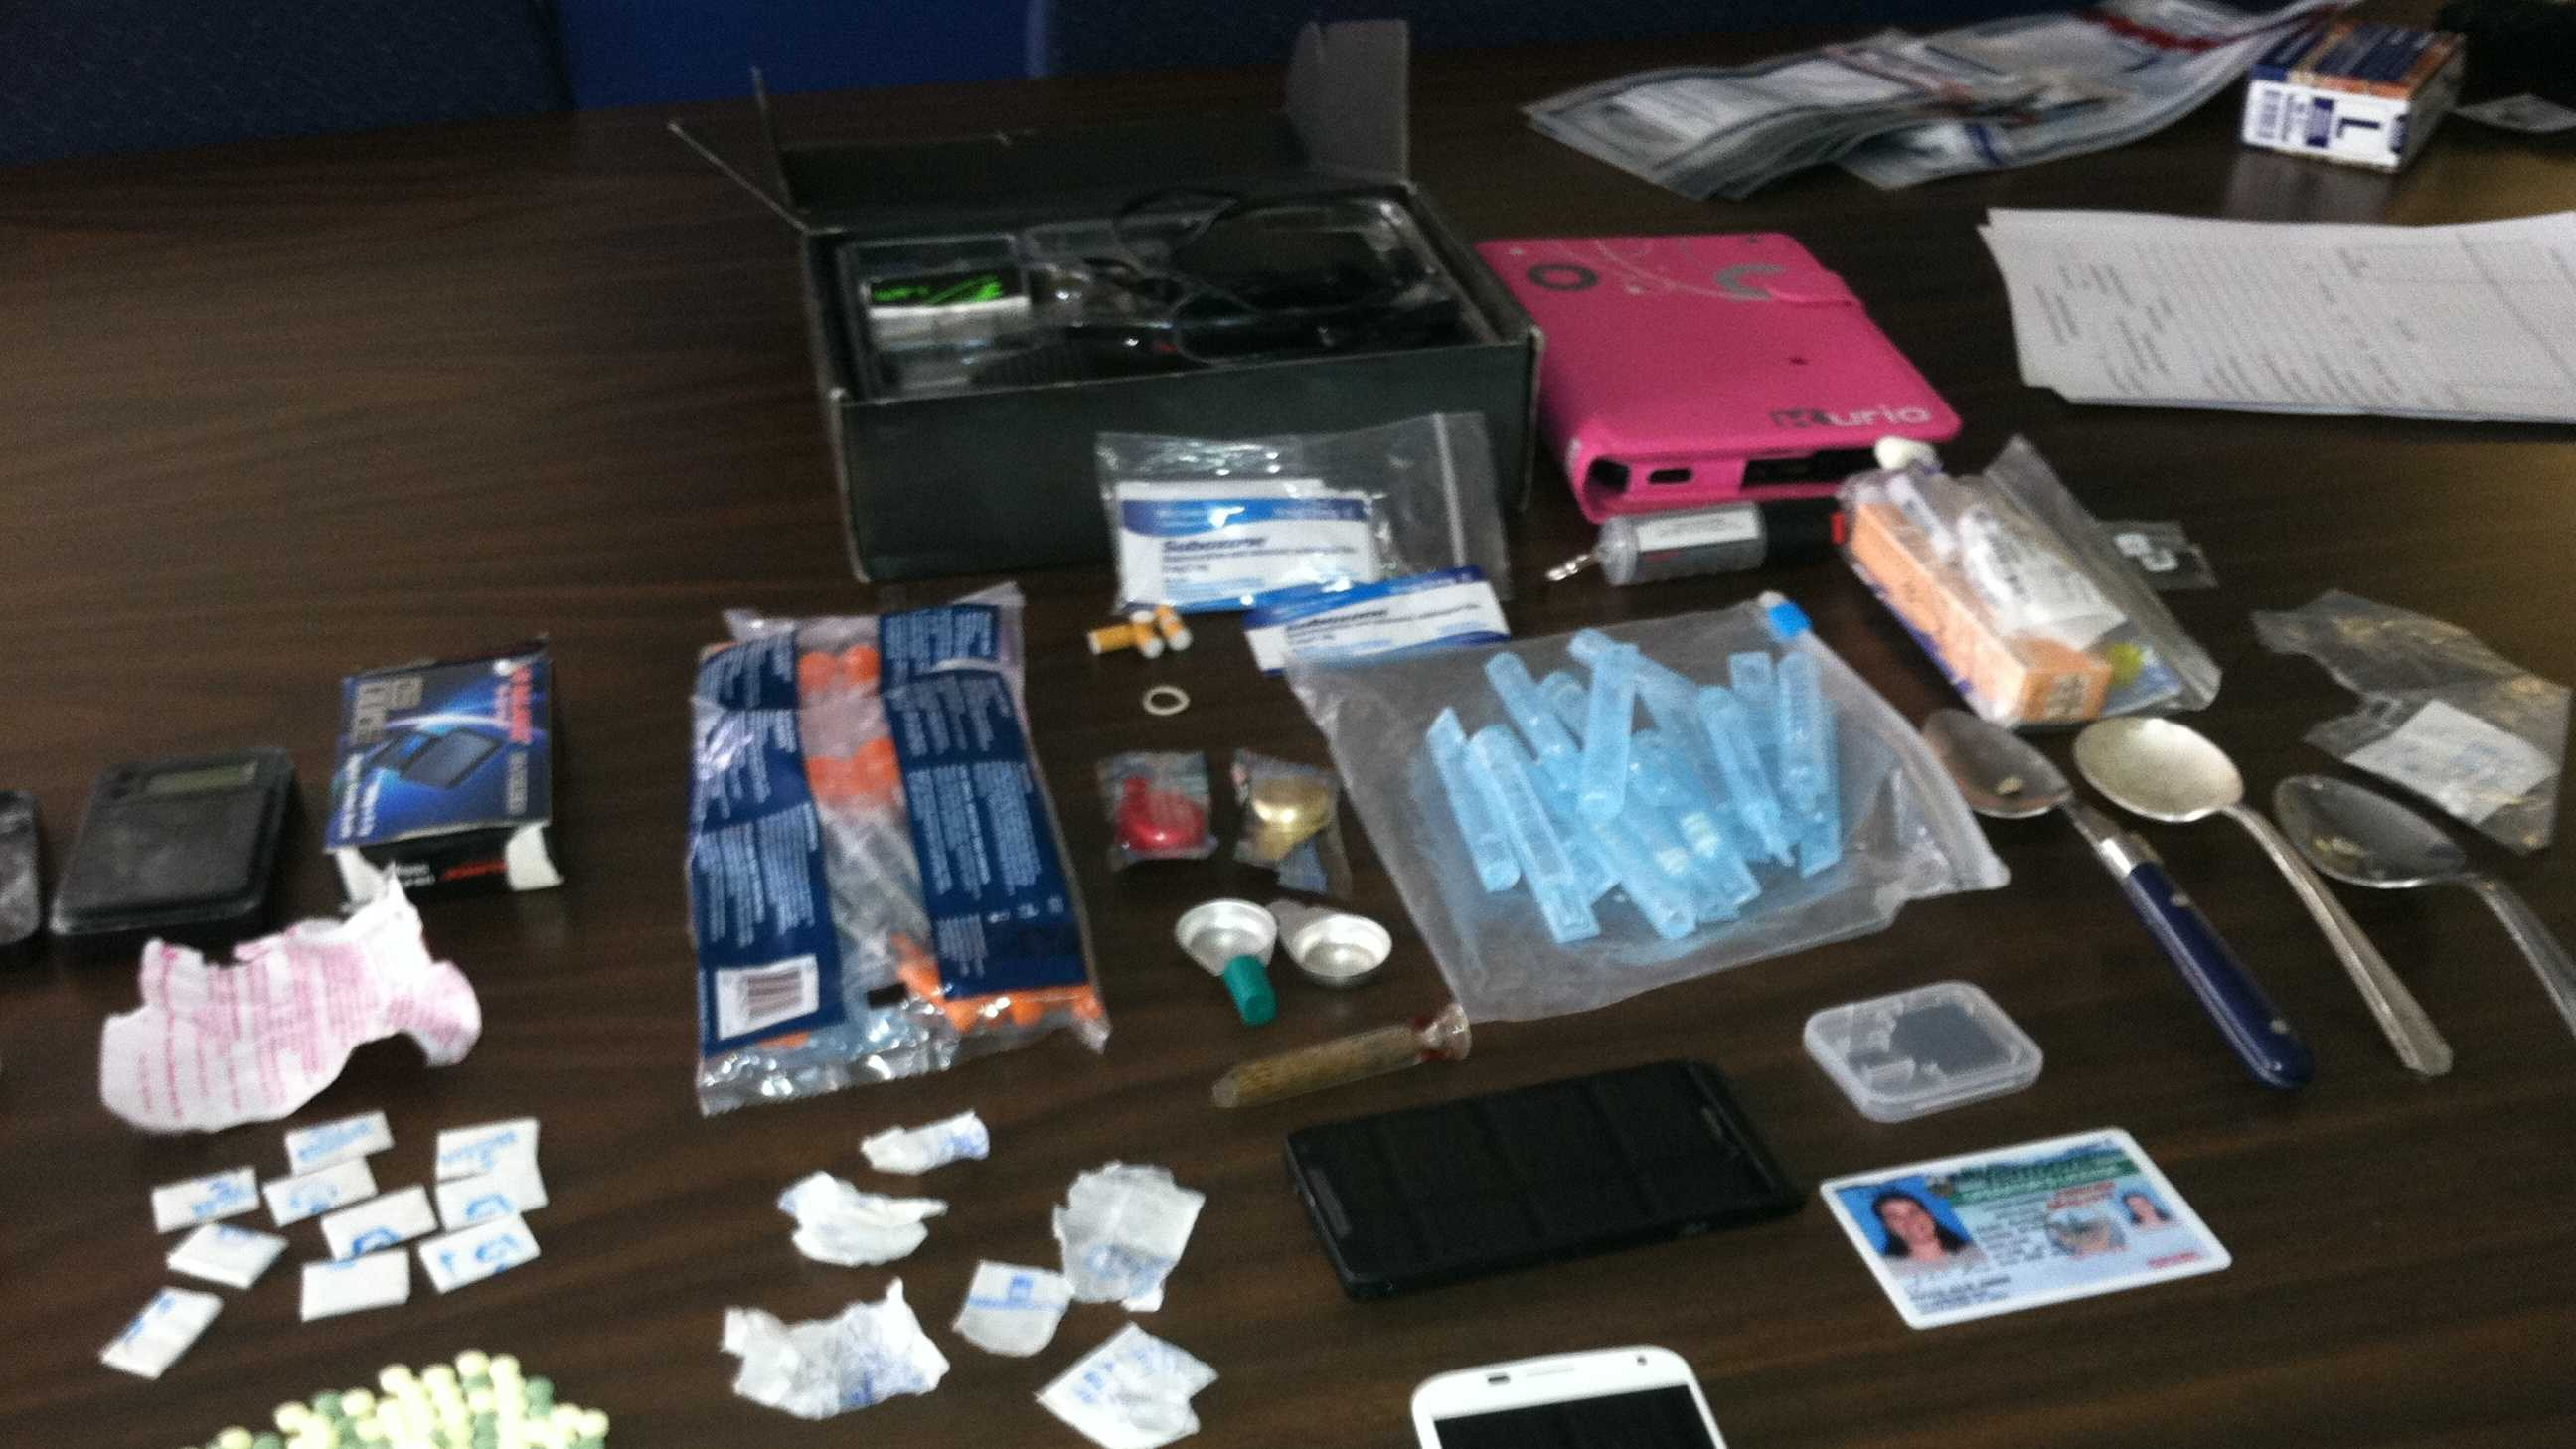 4-10-14 2 arrested for heroin within 2 days&#x3B; 4 cited in all - img